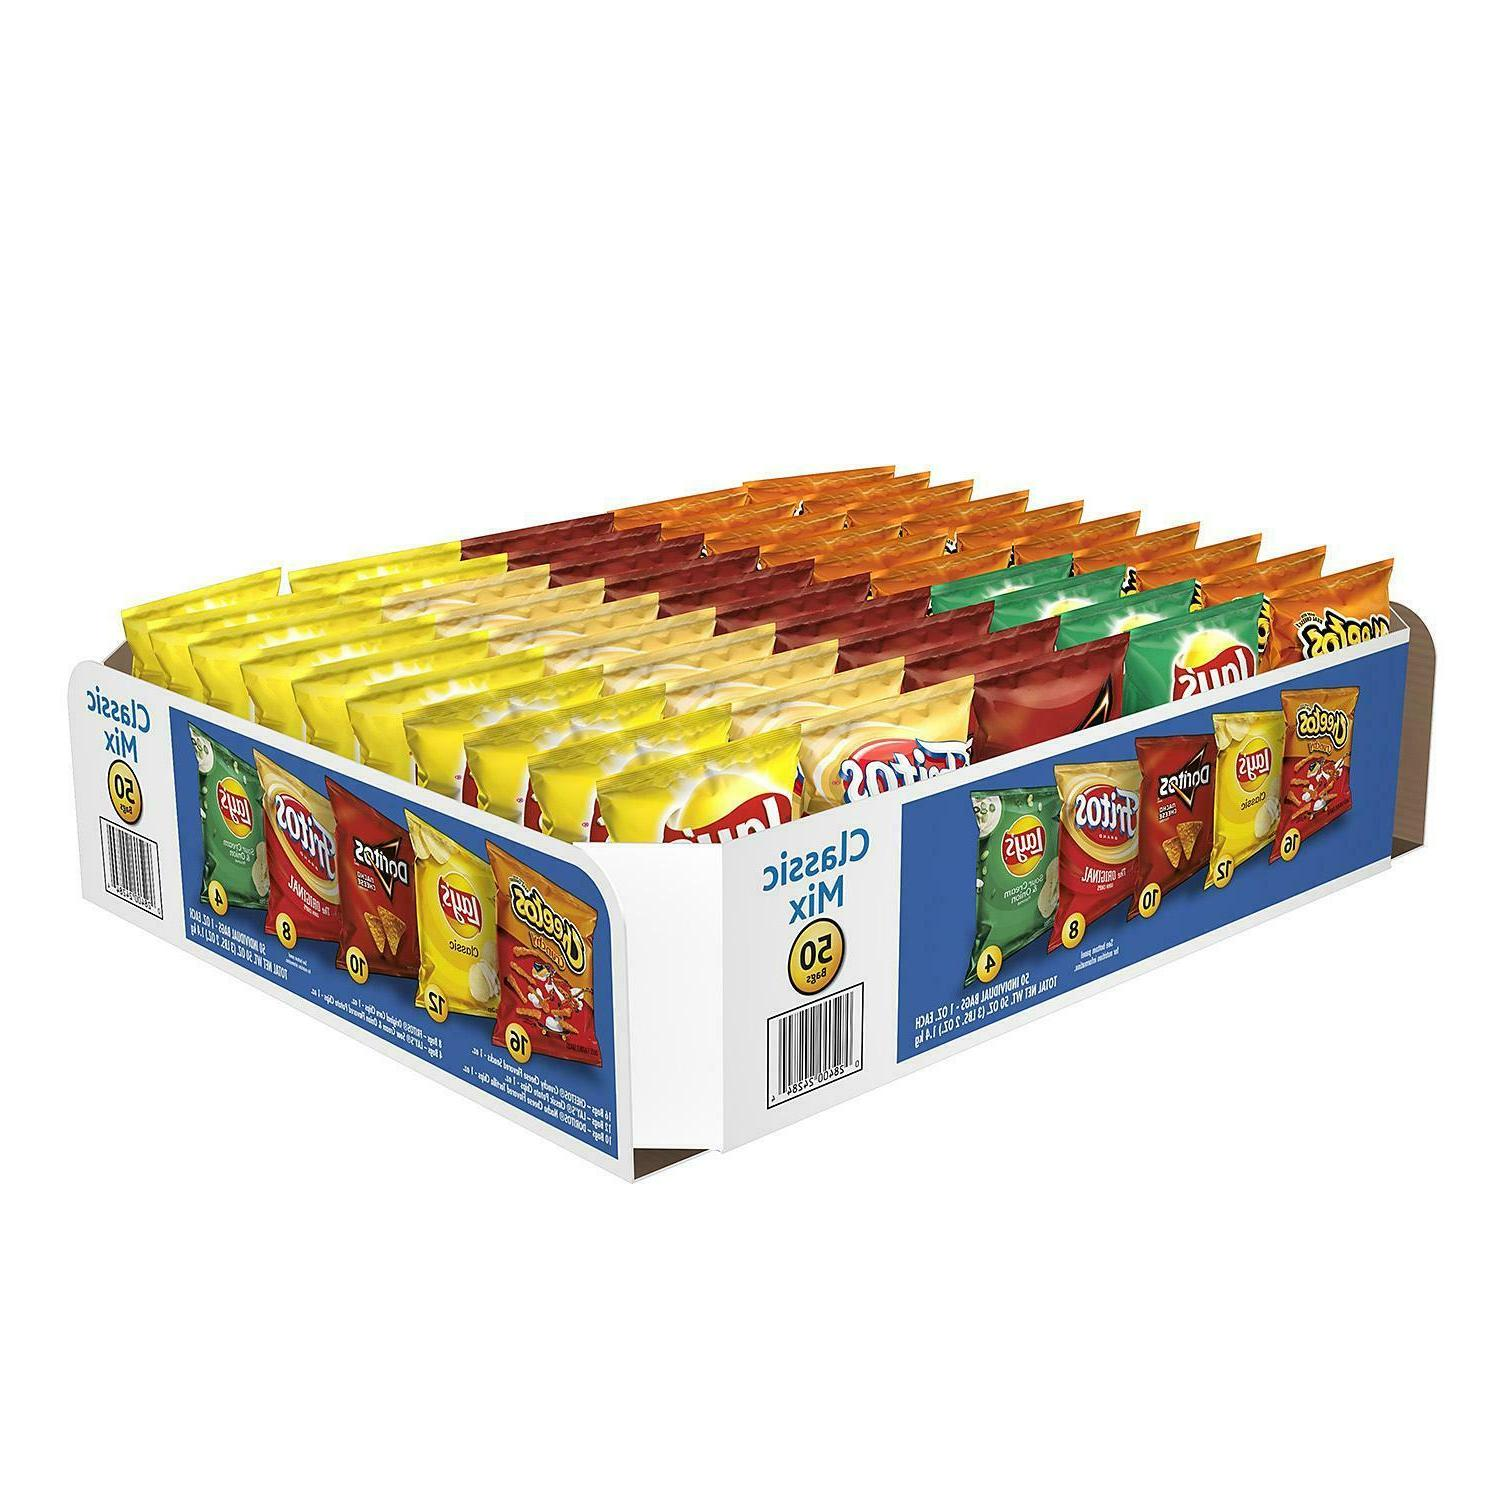 50 Mix Snacks, Includes Five